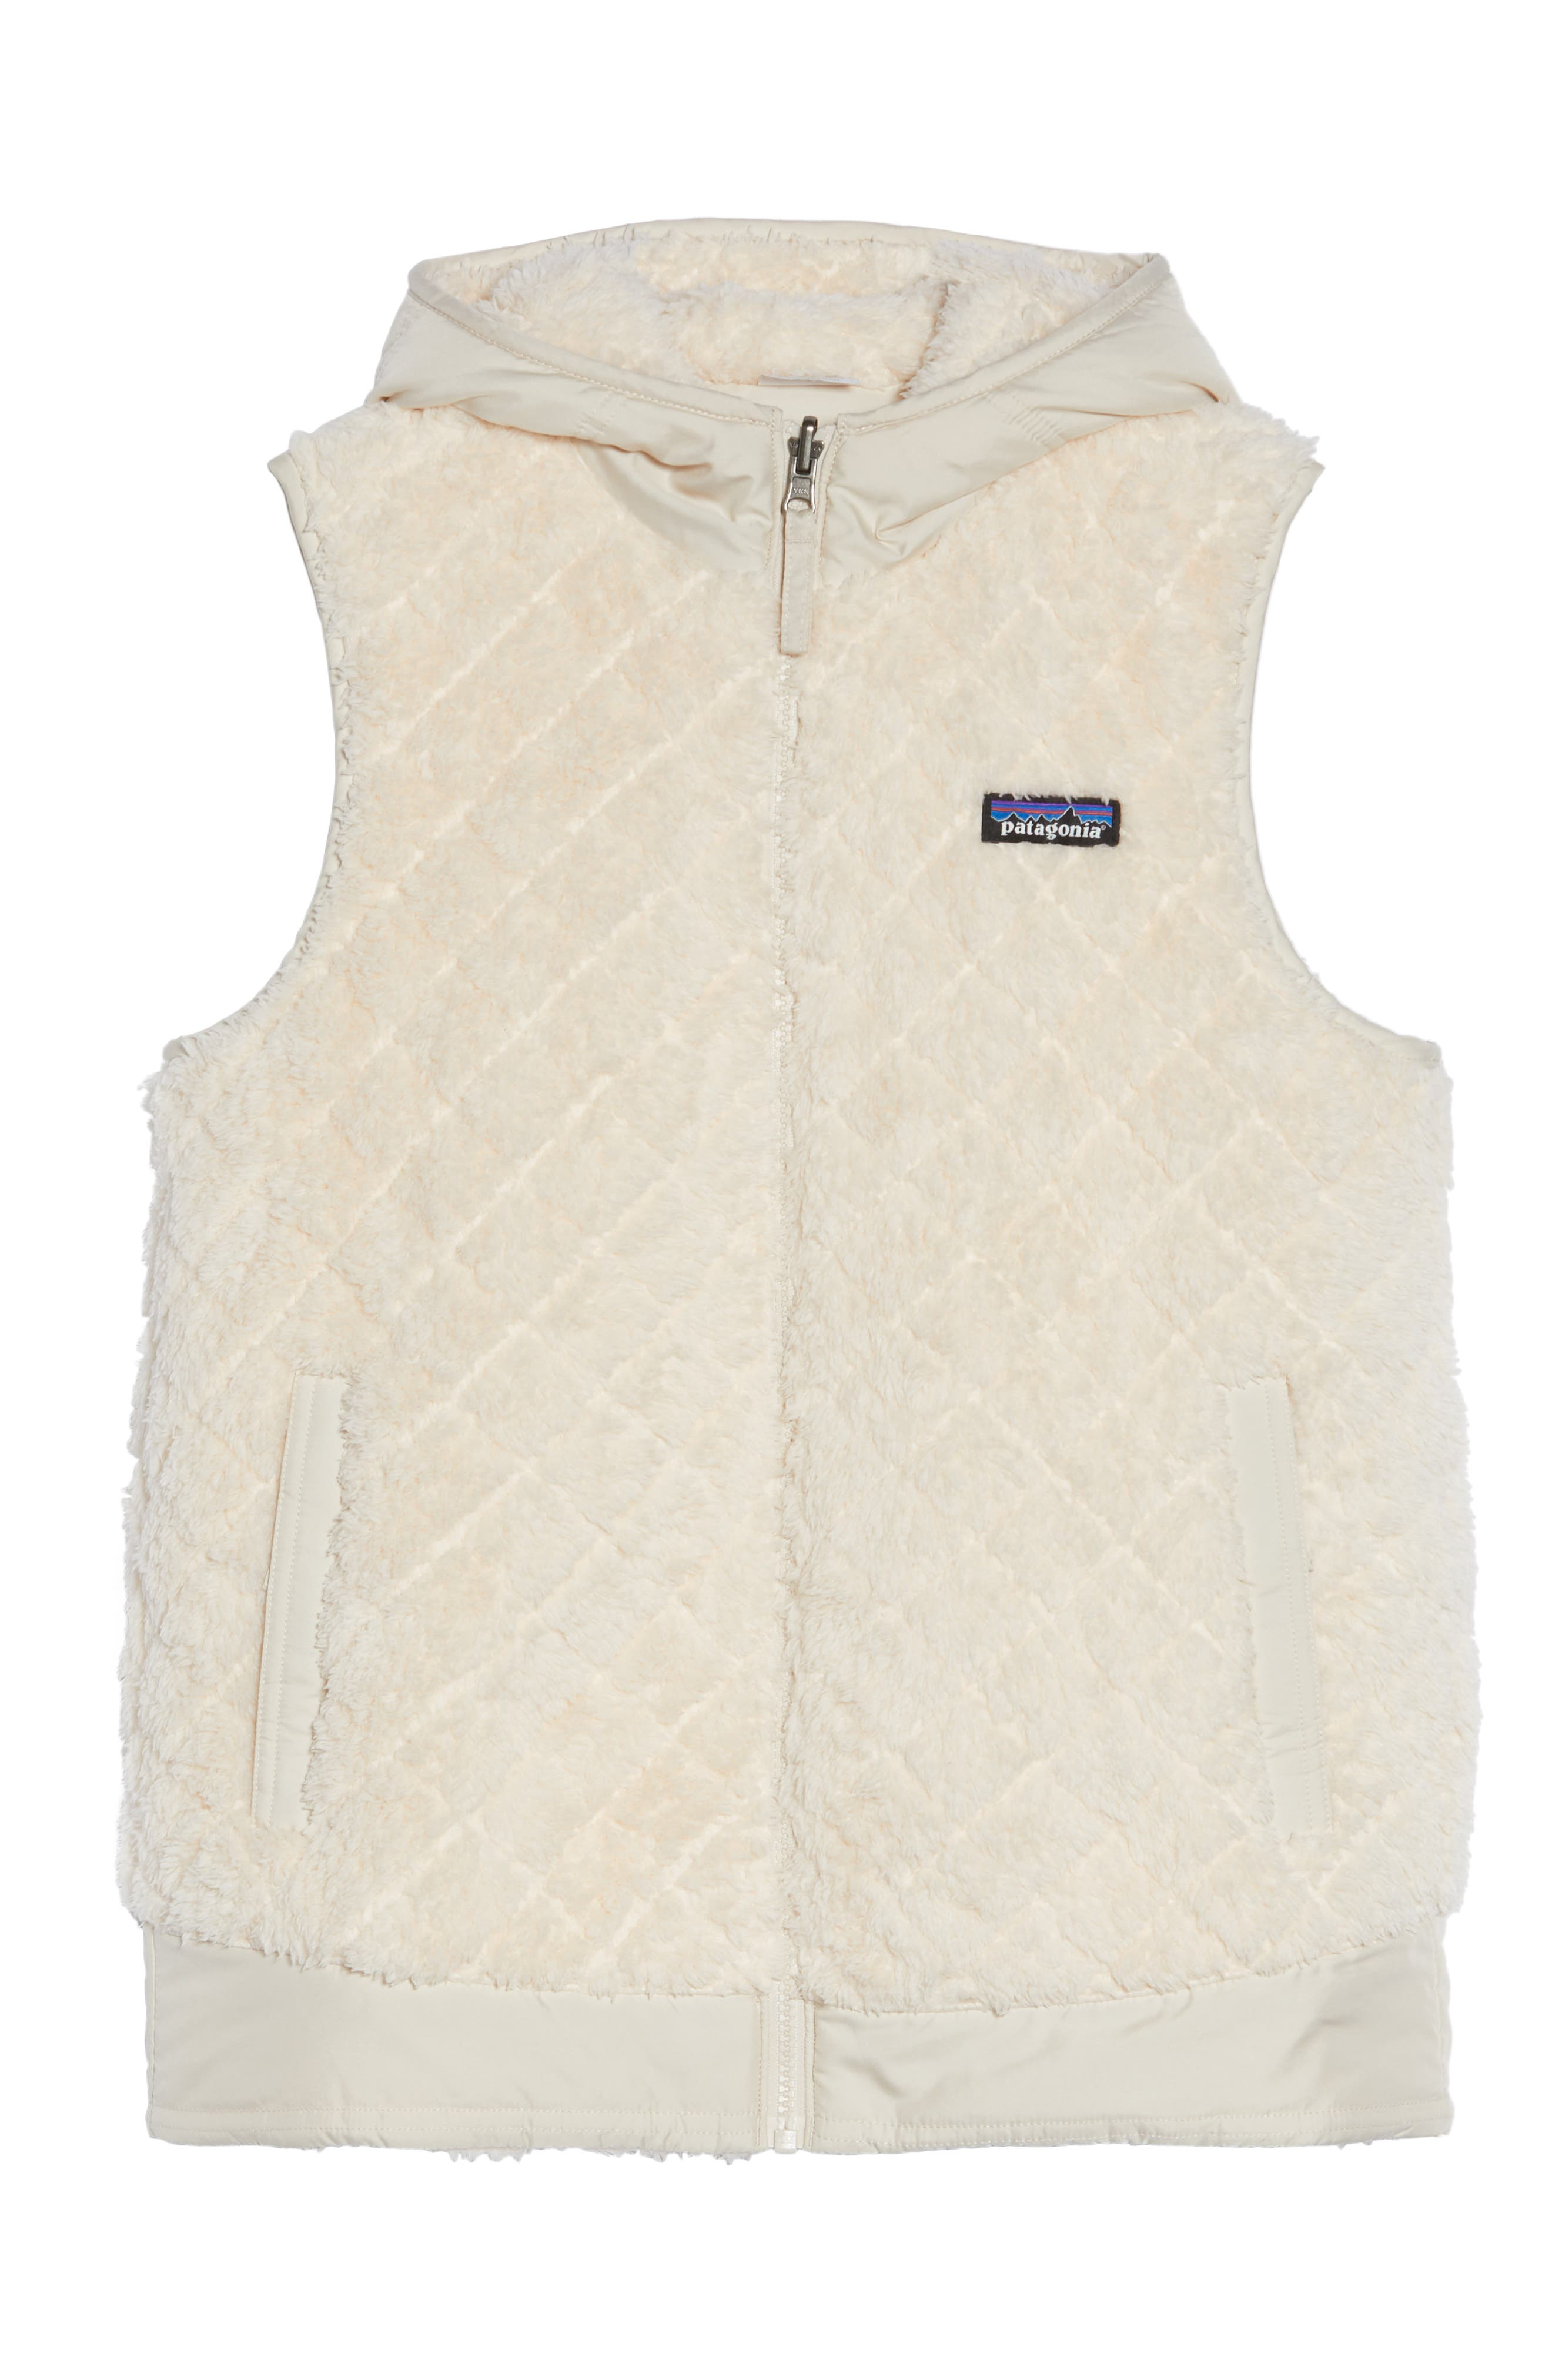 PATAGONIA, Los Gatos Reversible Vest, Alternate thumbnail 6, color, 251